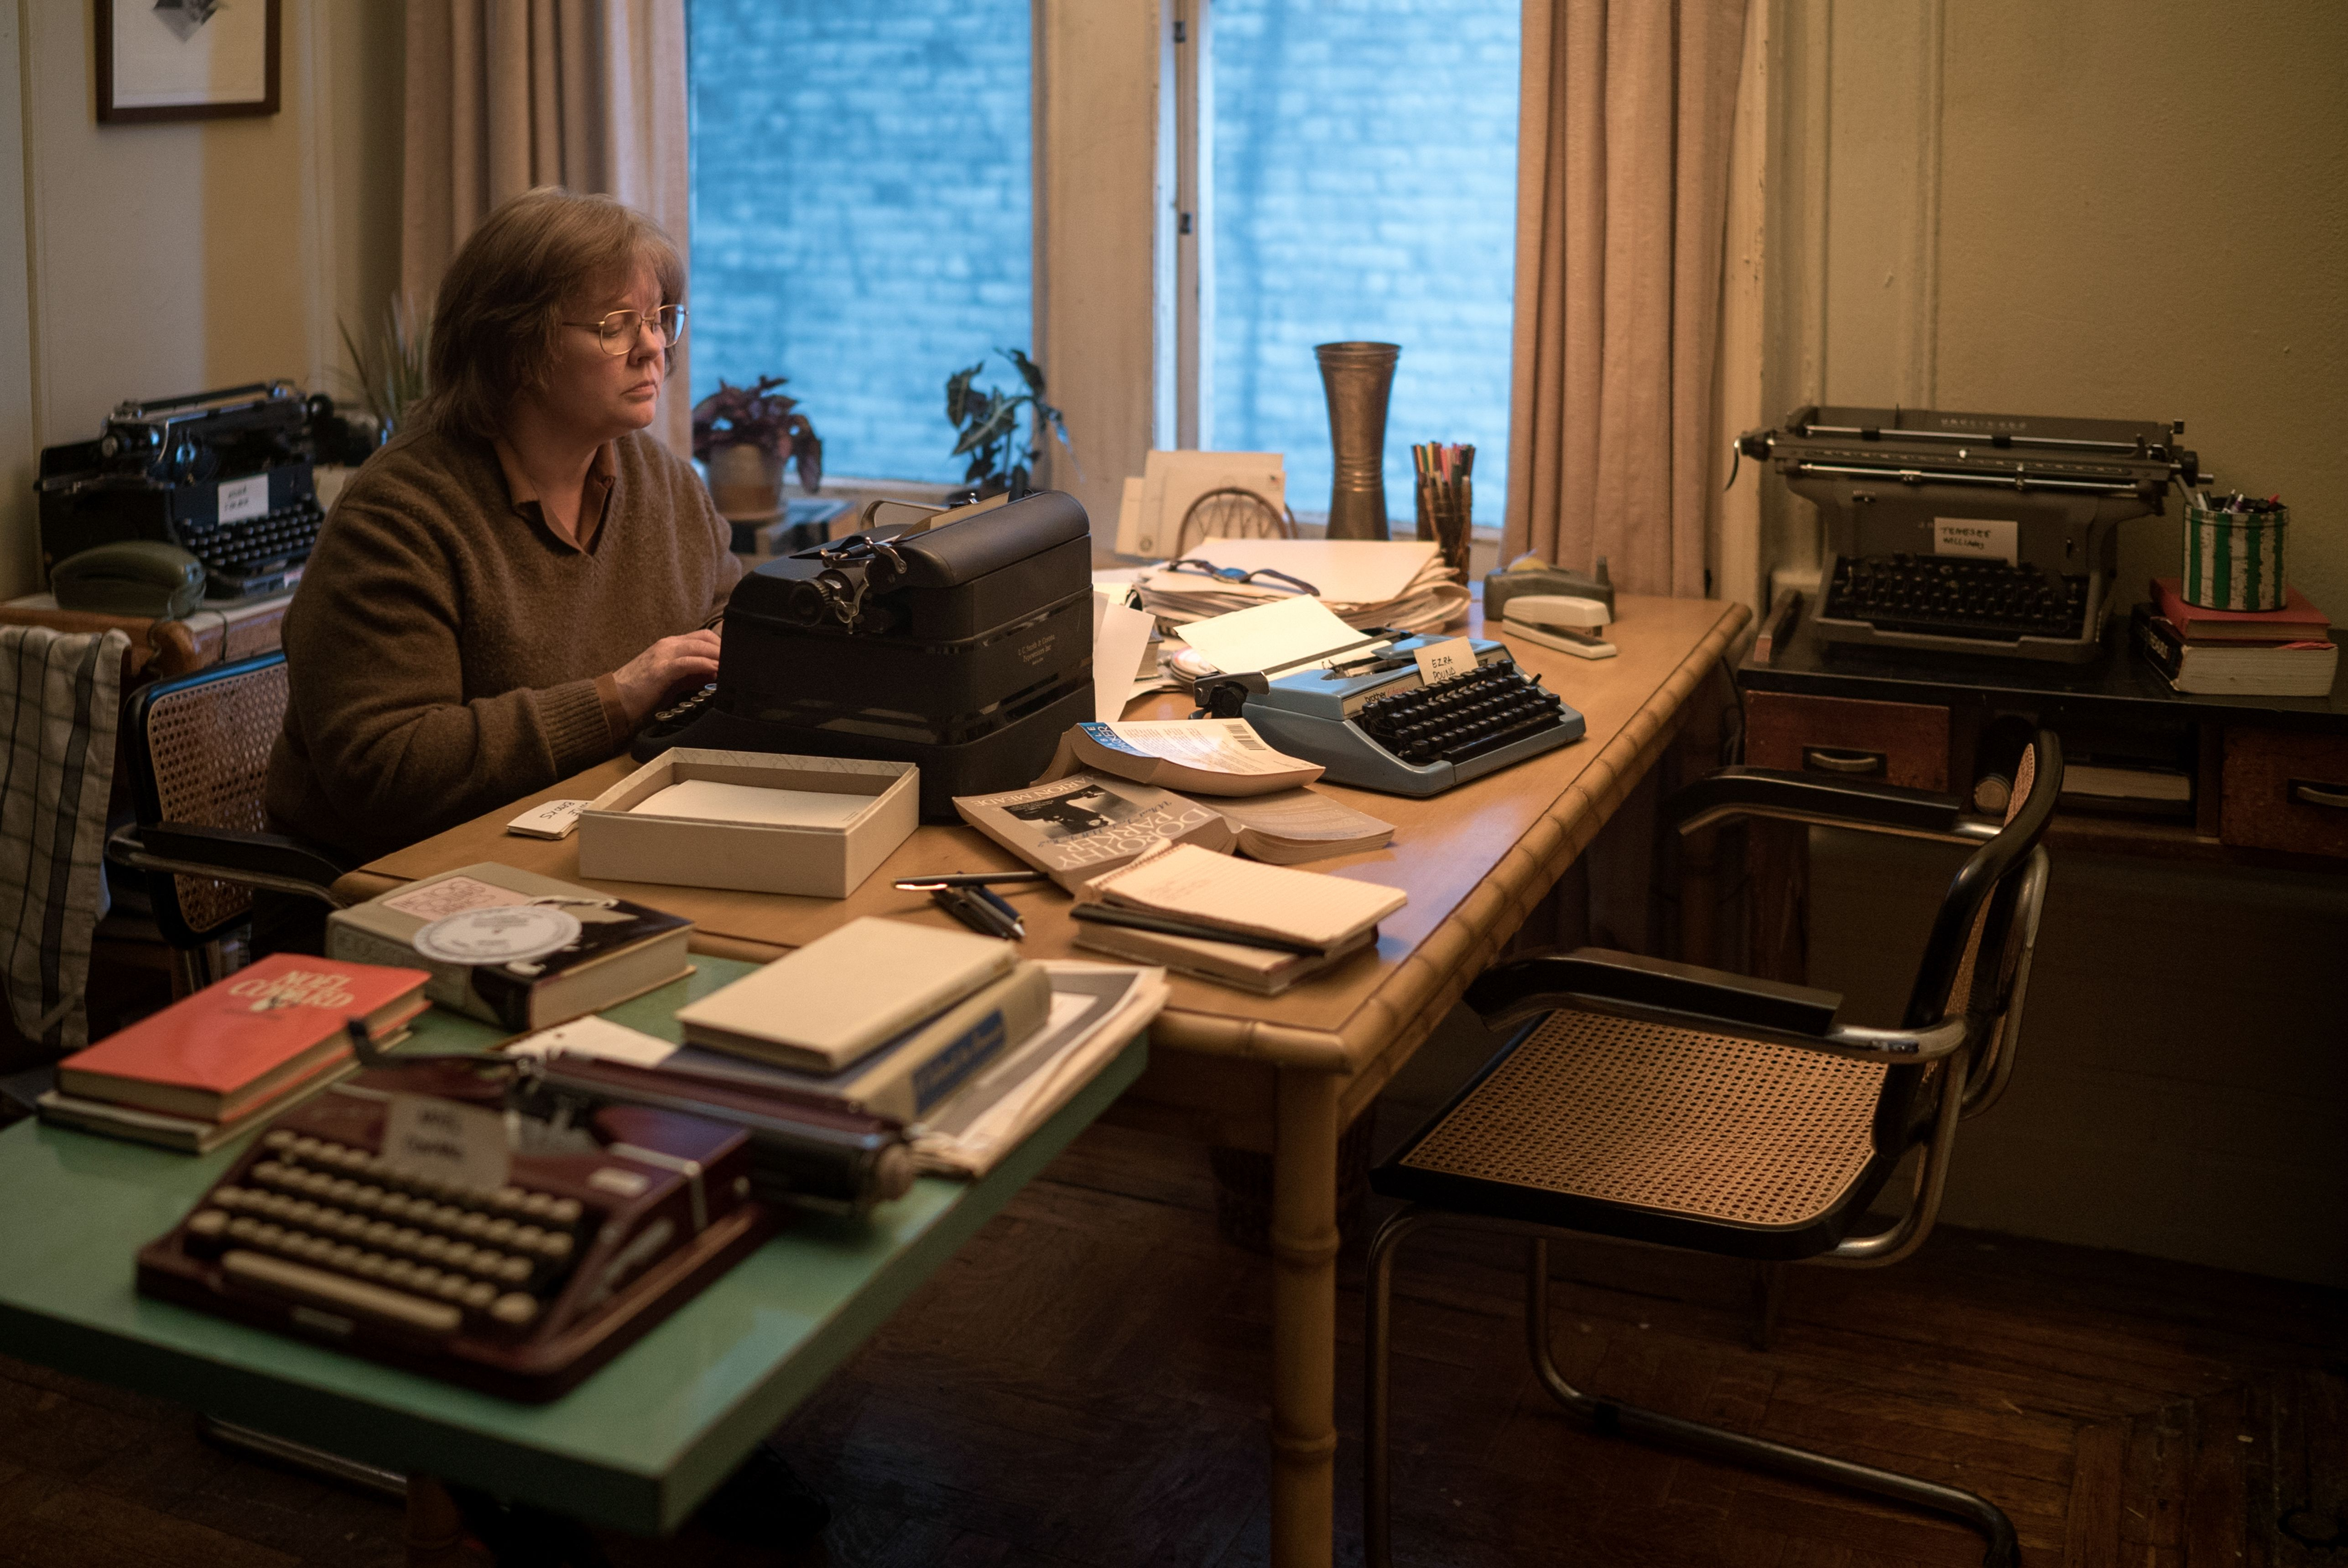 Editorial use only. No book cover usage.Mandatory Credit: Photo by M Cybulski/20thCenturyFox/Kobal/REX/Shutterstock (9927691i)Melissa McCarthy as Lee Israel'Can You Ever Forgive Me?' Film - 2018When Lee Israel falls out of step with current tastes, she turns her art form to deception. An adaptation of the memoir Can You Ever Forgive Me?, the true story of best-selling celebrity biographer Lee Israel.